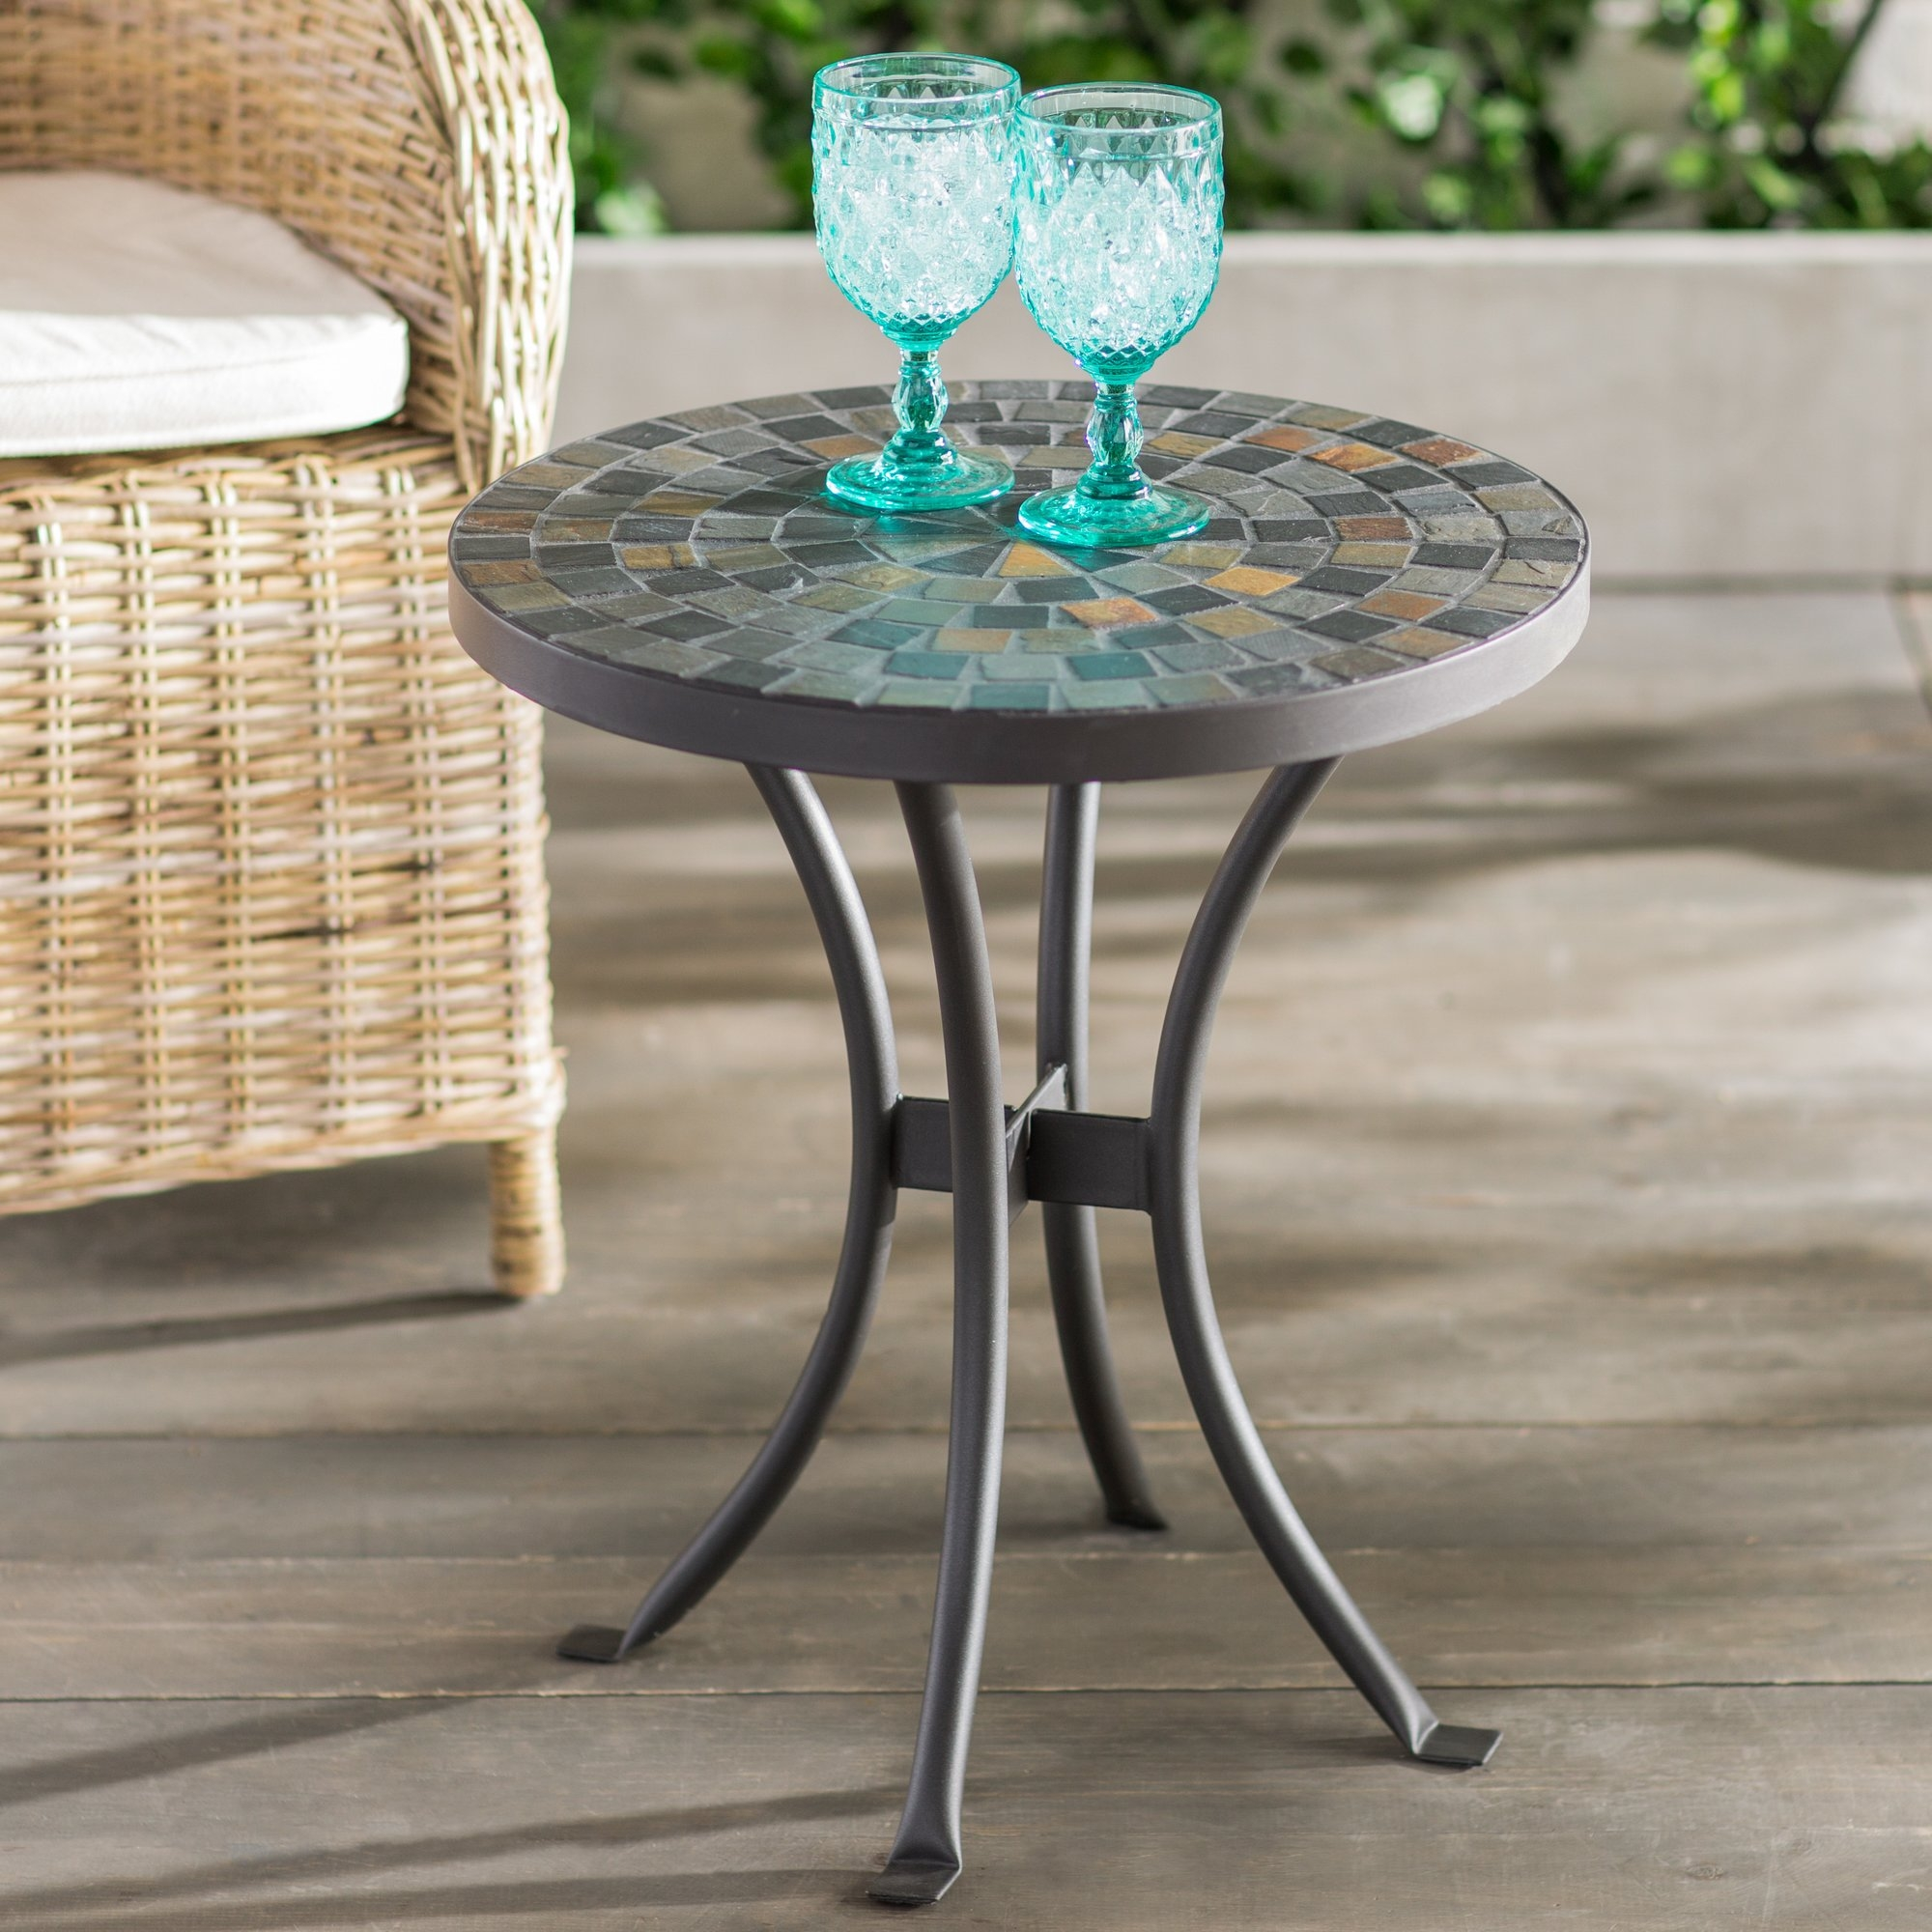 outdoor mosaic side table accent round coffee tables for small patio brie beachcrest home res balcony new pottery barn marble vintage white end garden storage solutions wicker and